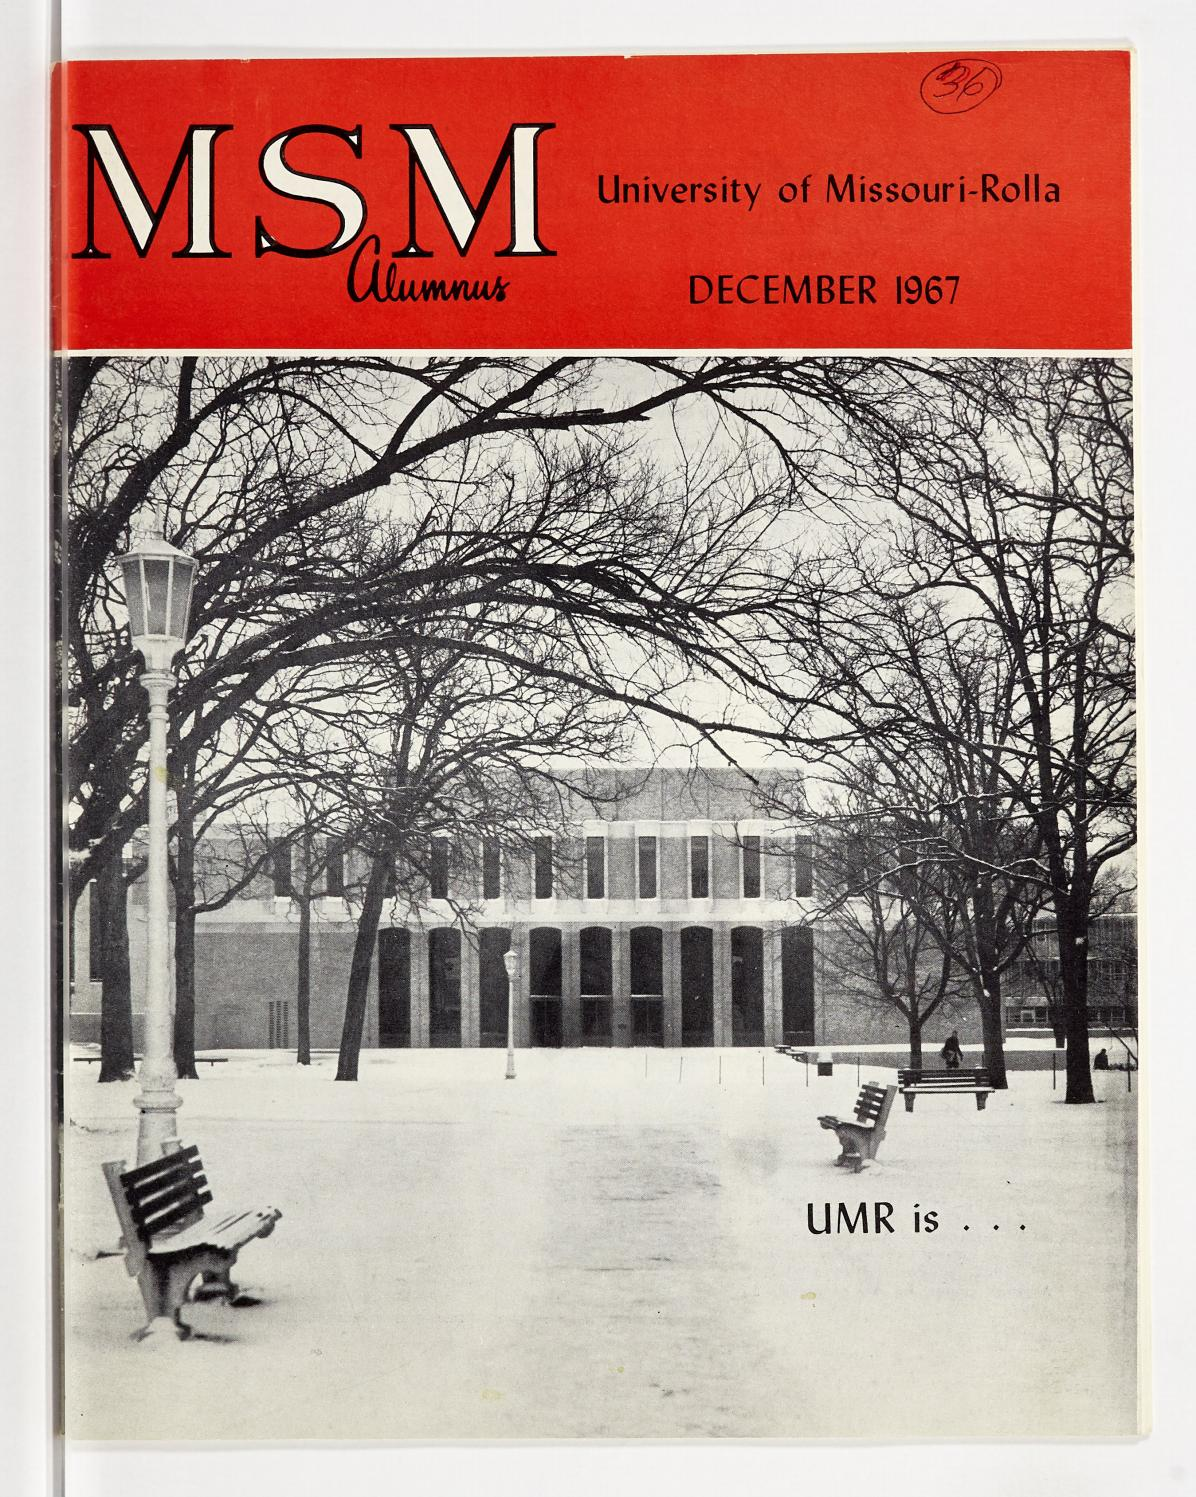 Missouri S T Magazine December 1967 By Missouri S T Library And Learning Resources Curtis Laws Wilson Library Issuu